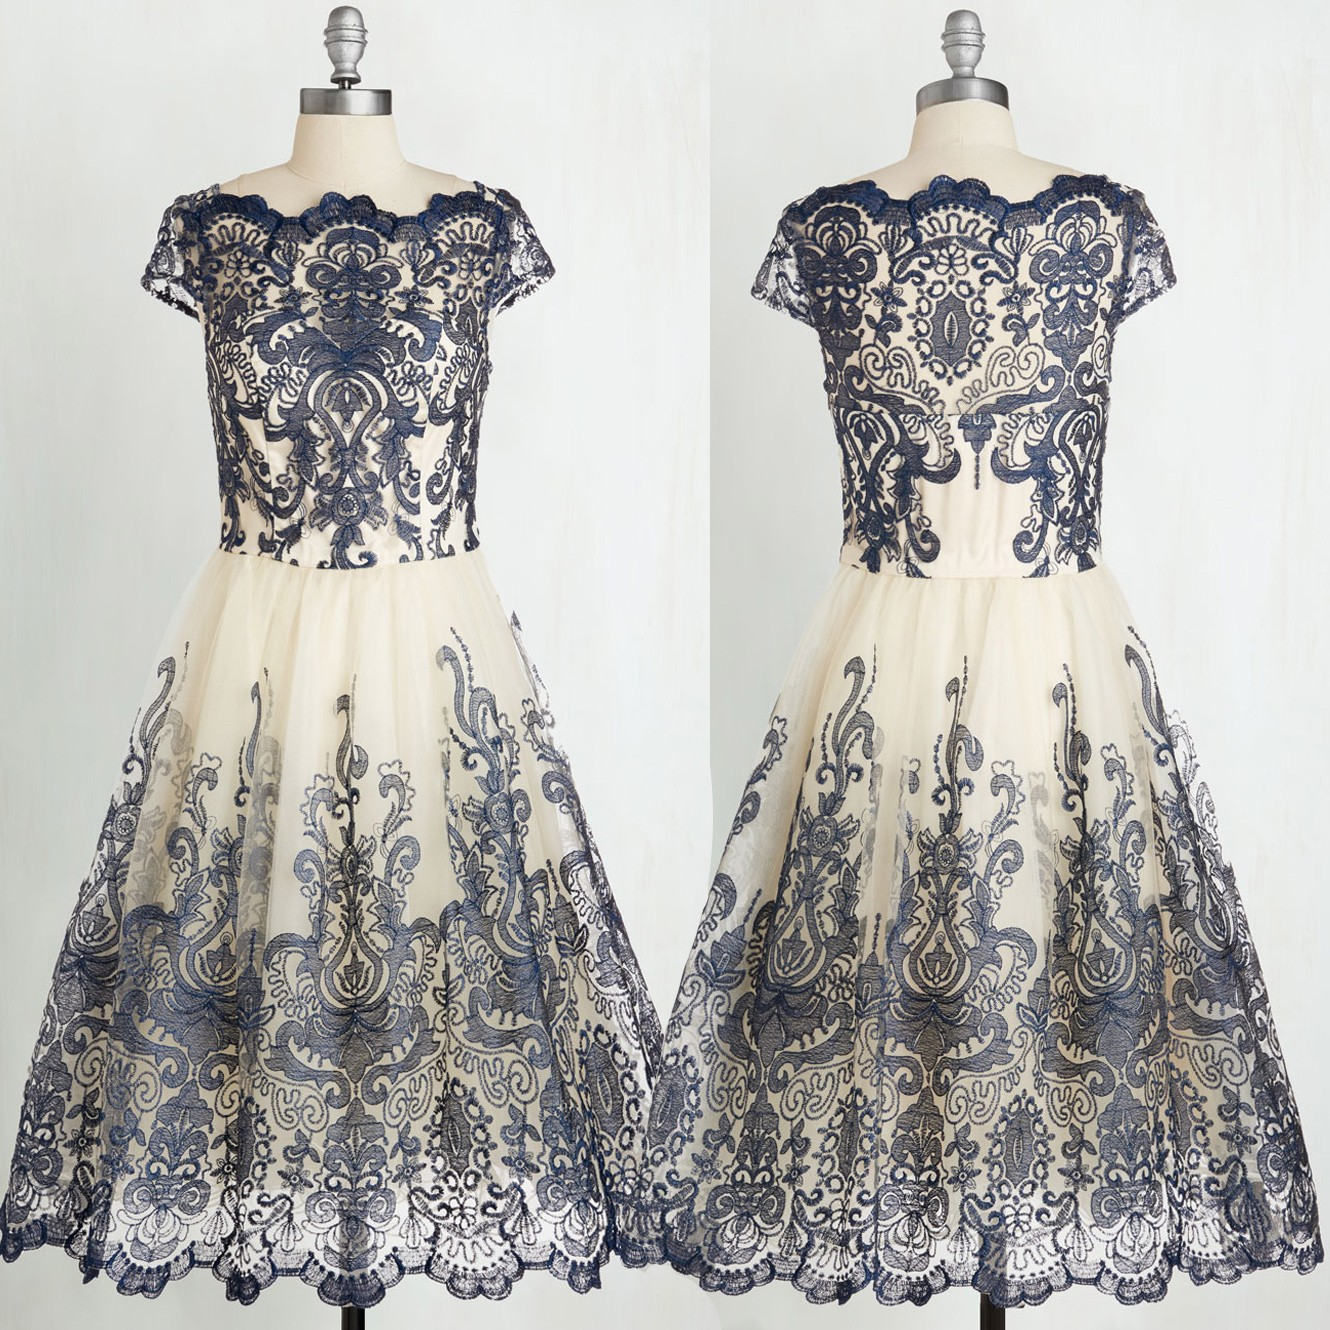 New Arrival Cheap Vintage Ball Gown Prom Dress with Lace Under 100 ...